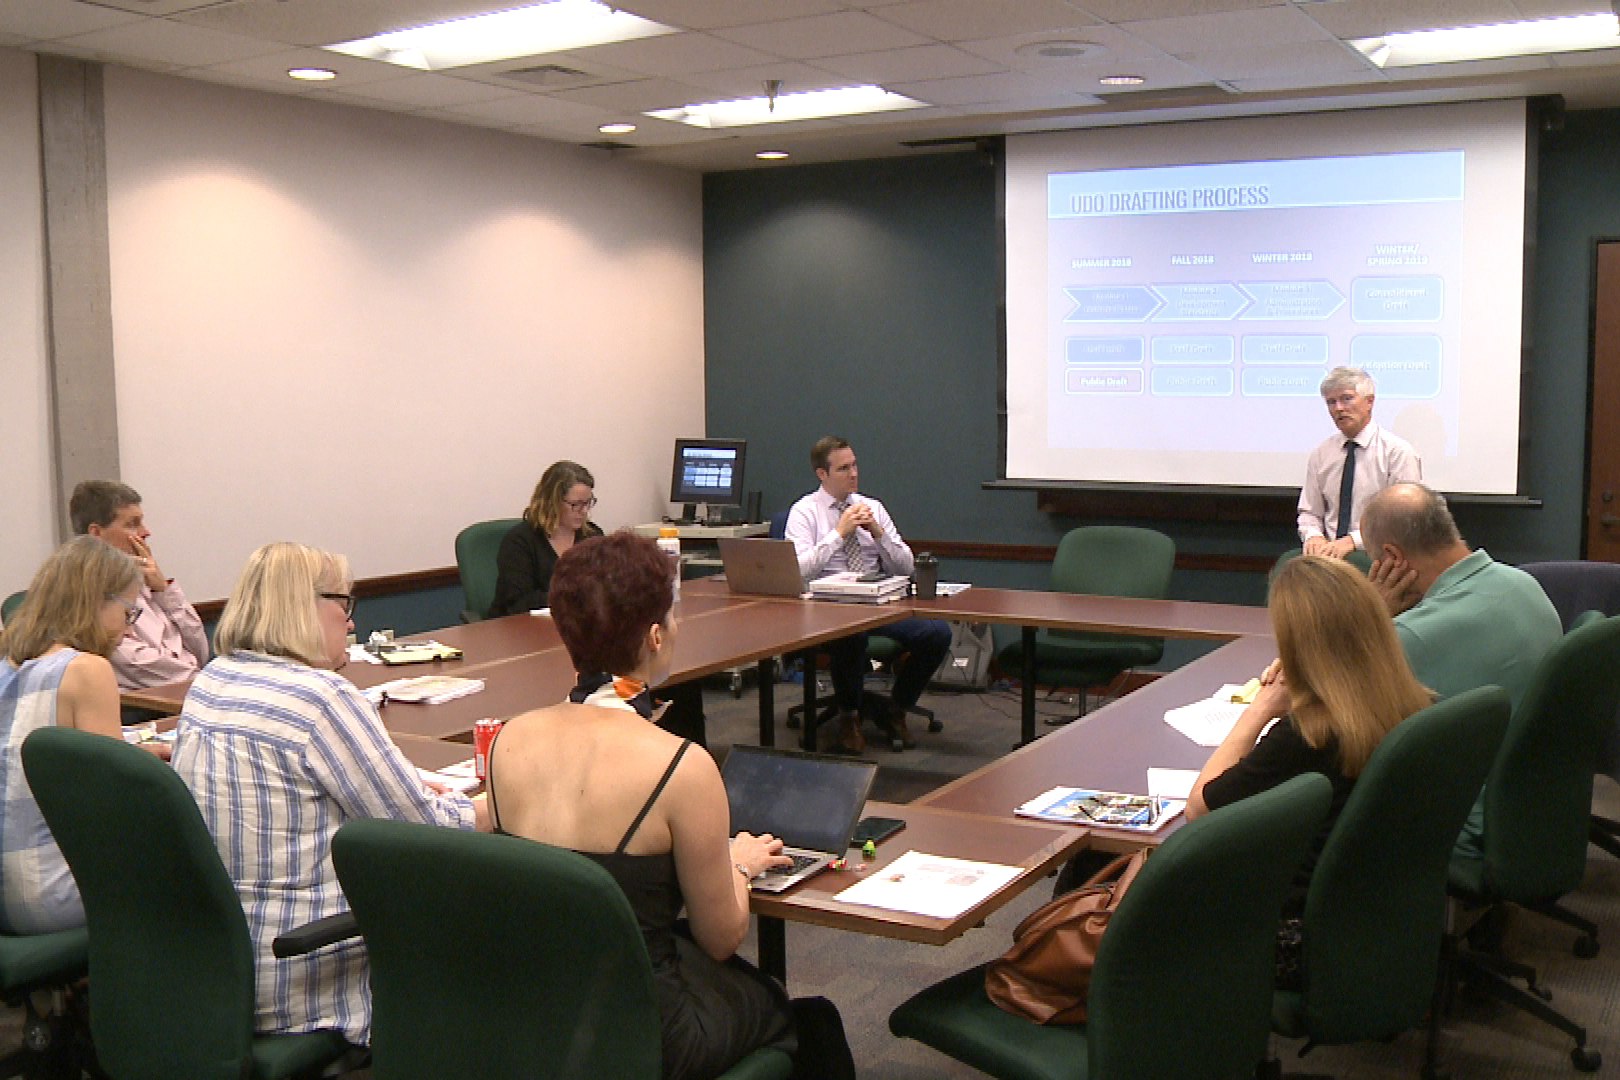 City officials discuss student housing, downtown development at a UDO planning meeting. (Tyler lake, WTIU/WFIU News)